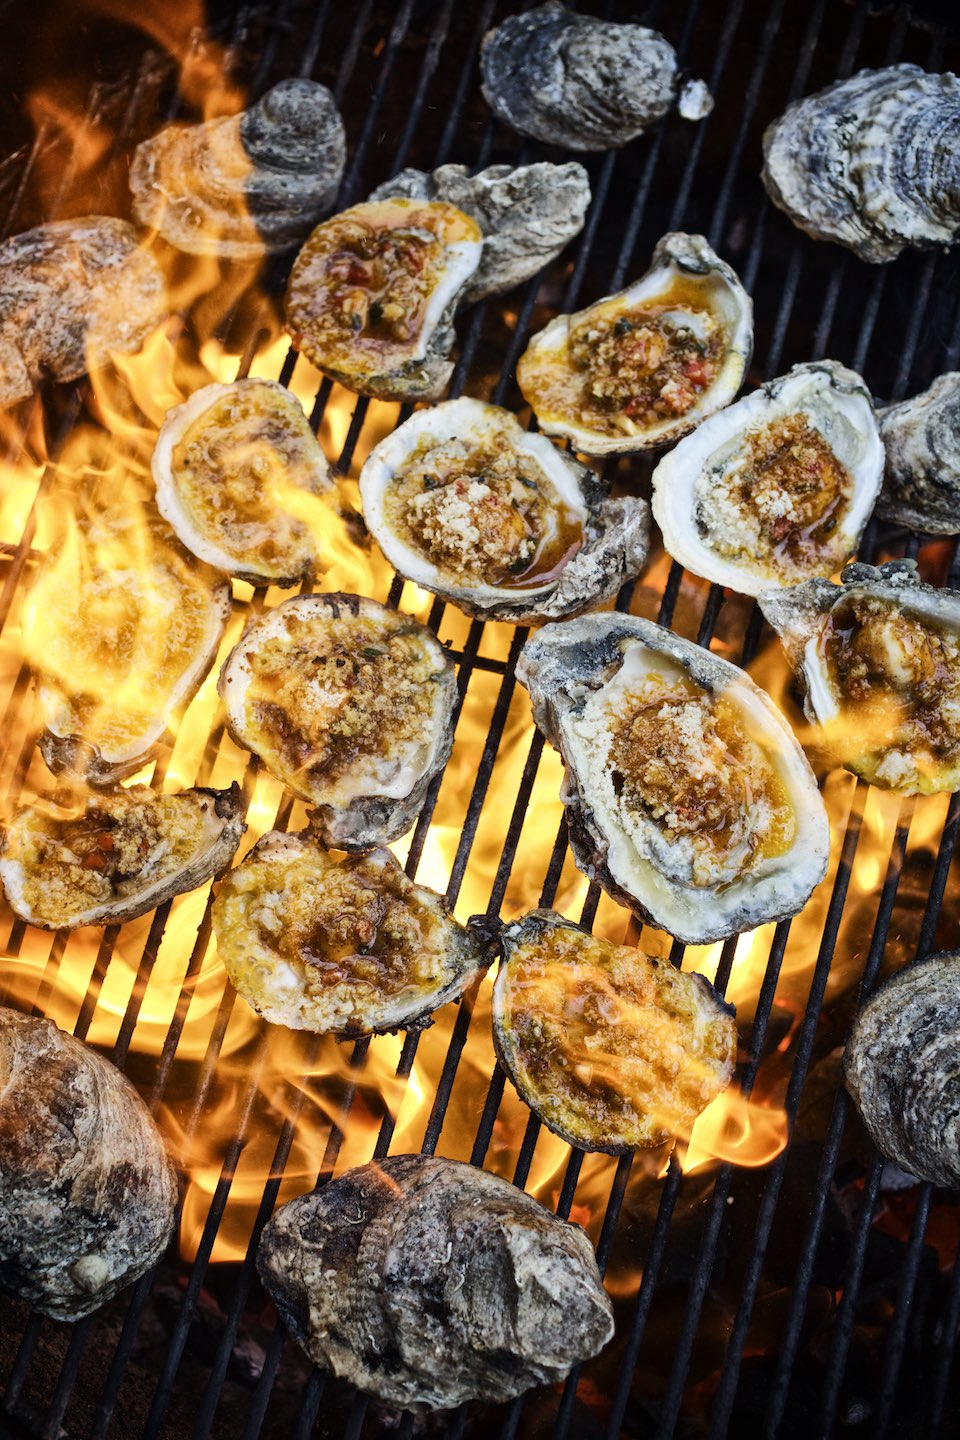 Dressed oysters in half-shell on the grill.